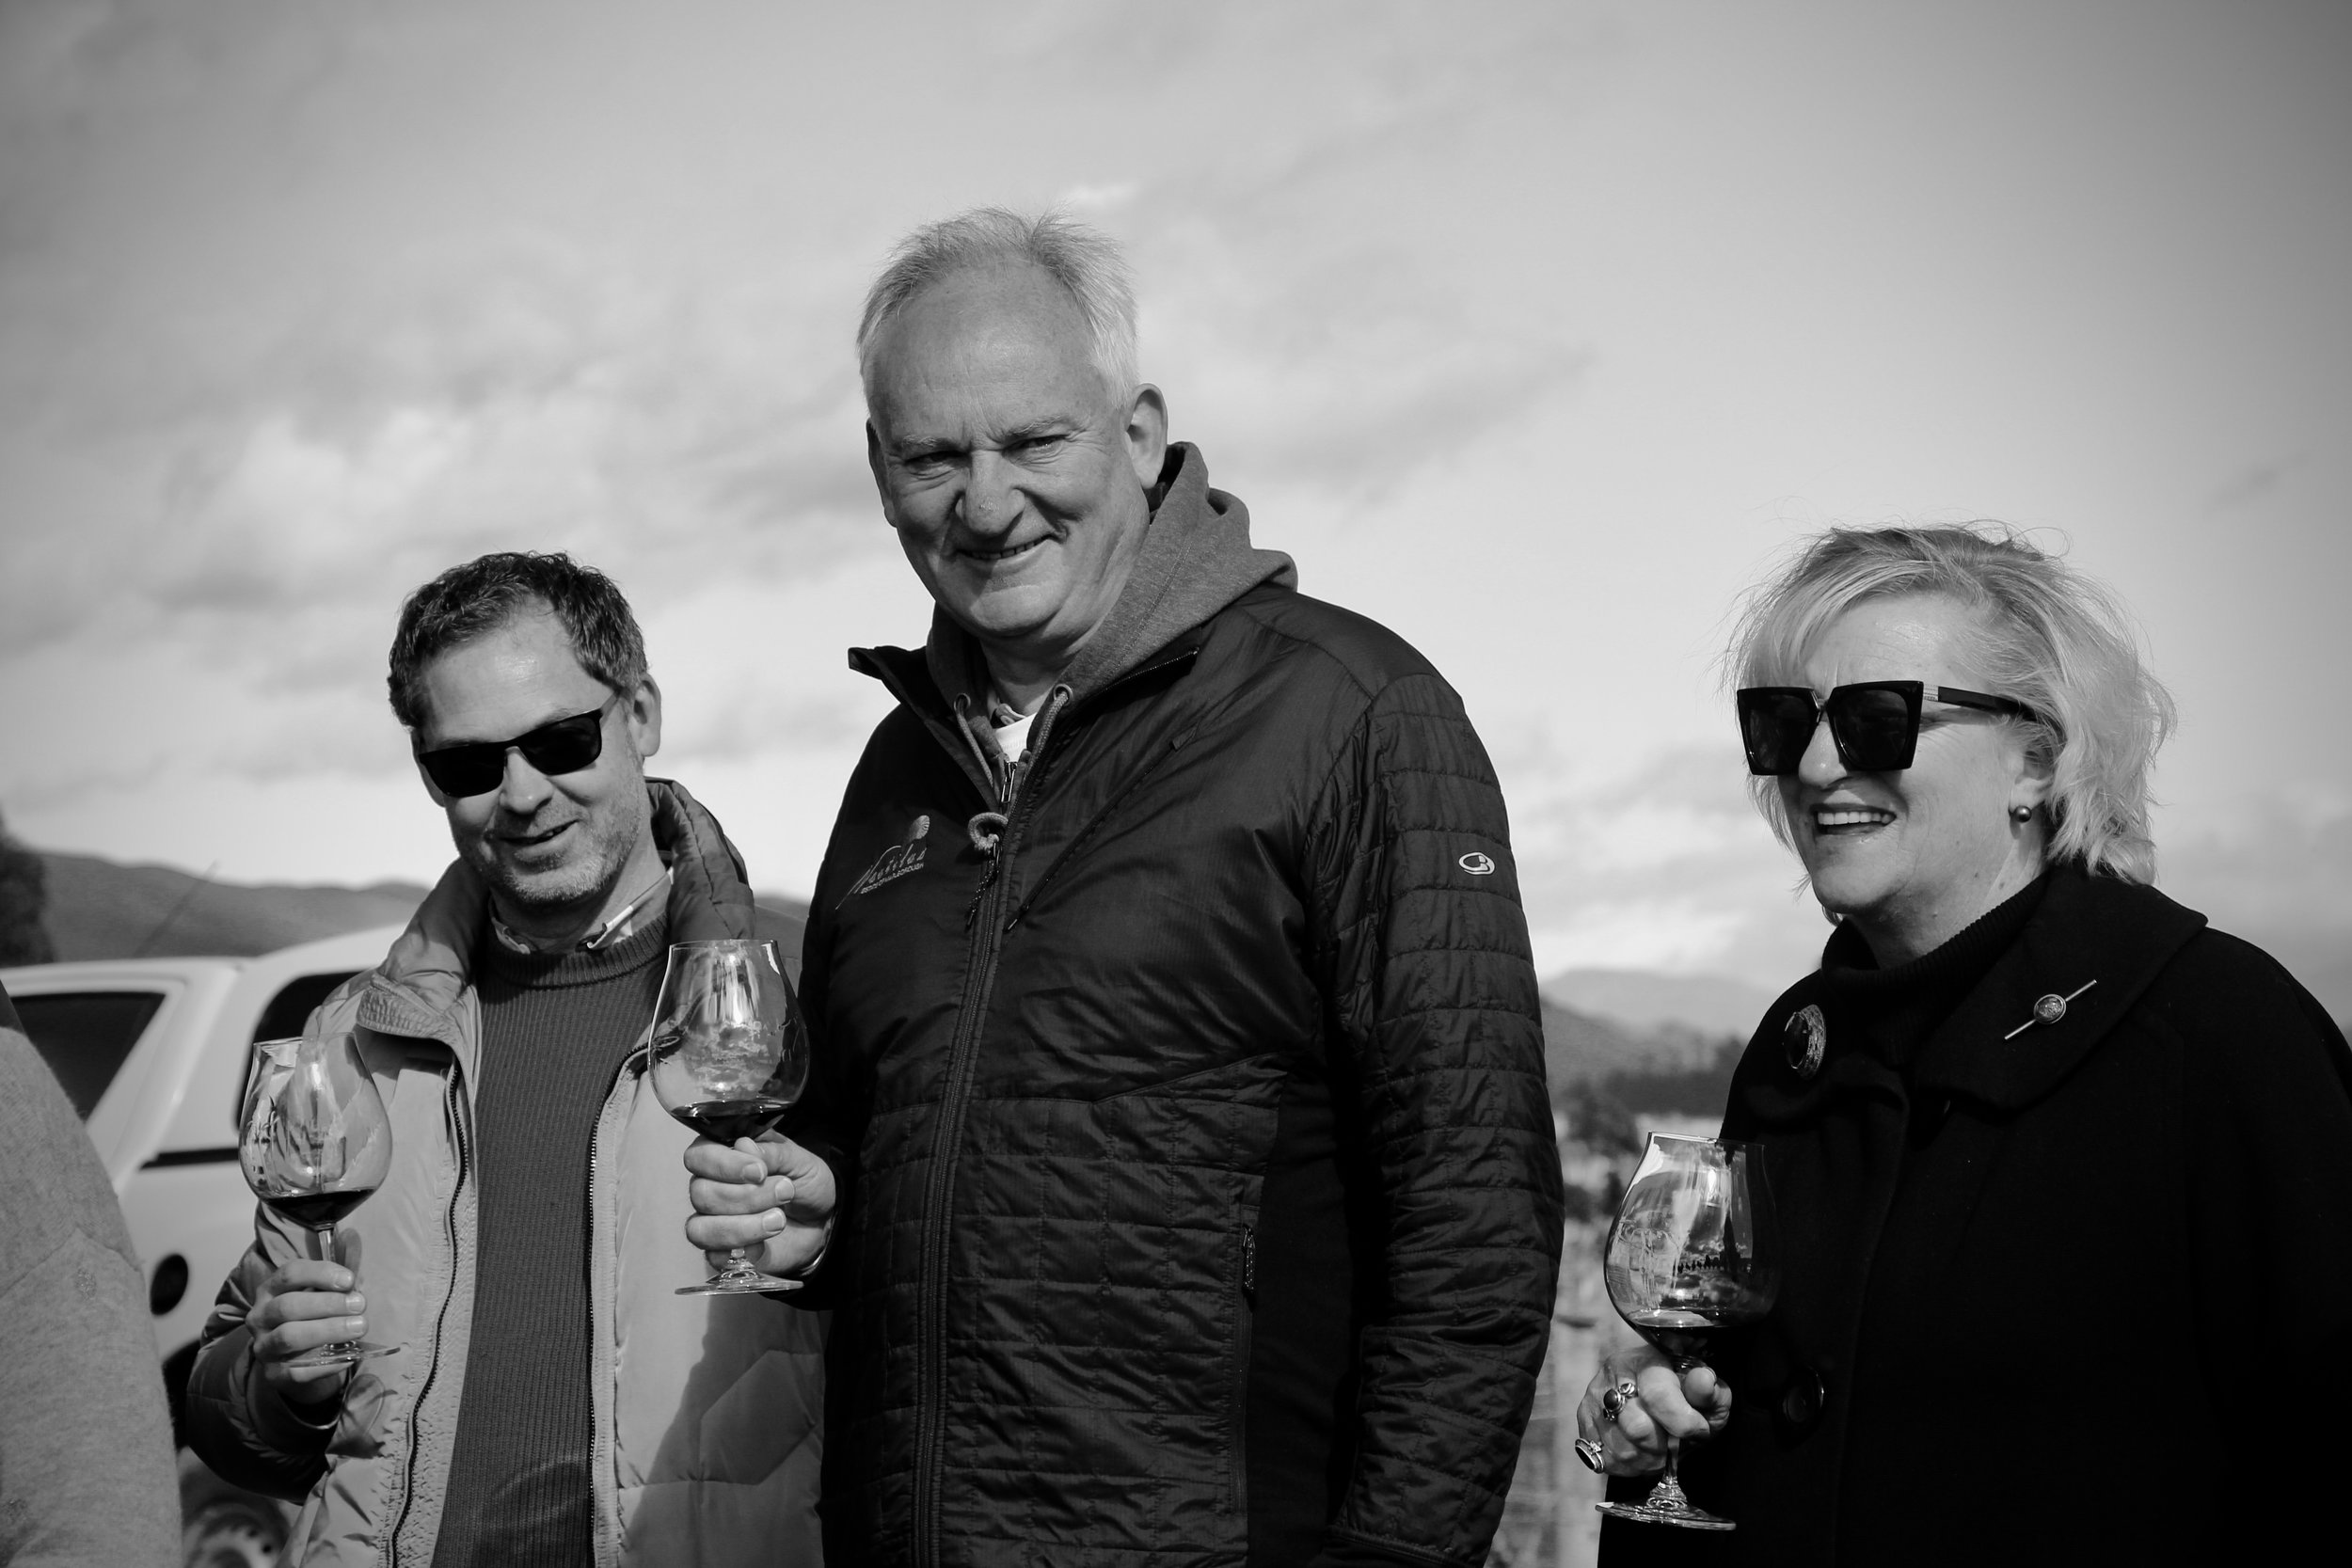 Parky, Cleevay & Miranda supping on Greywacke 2013